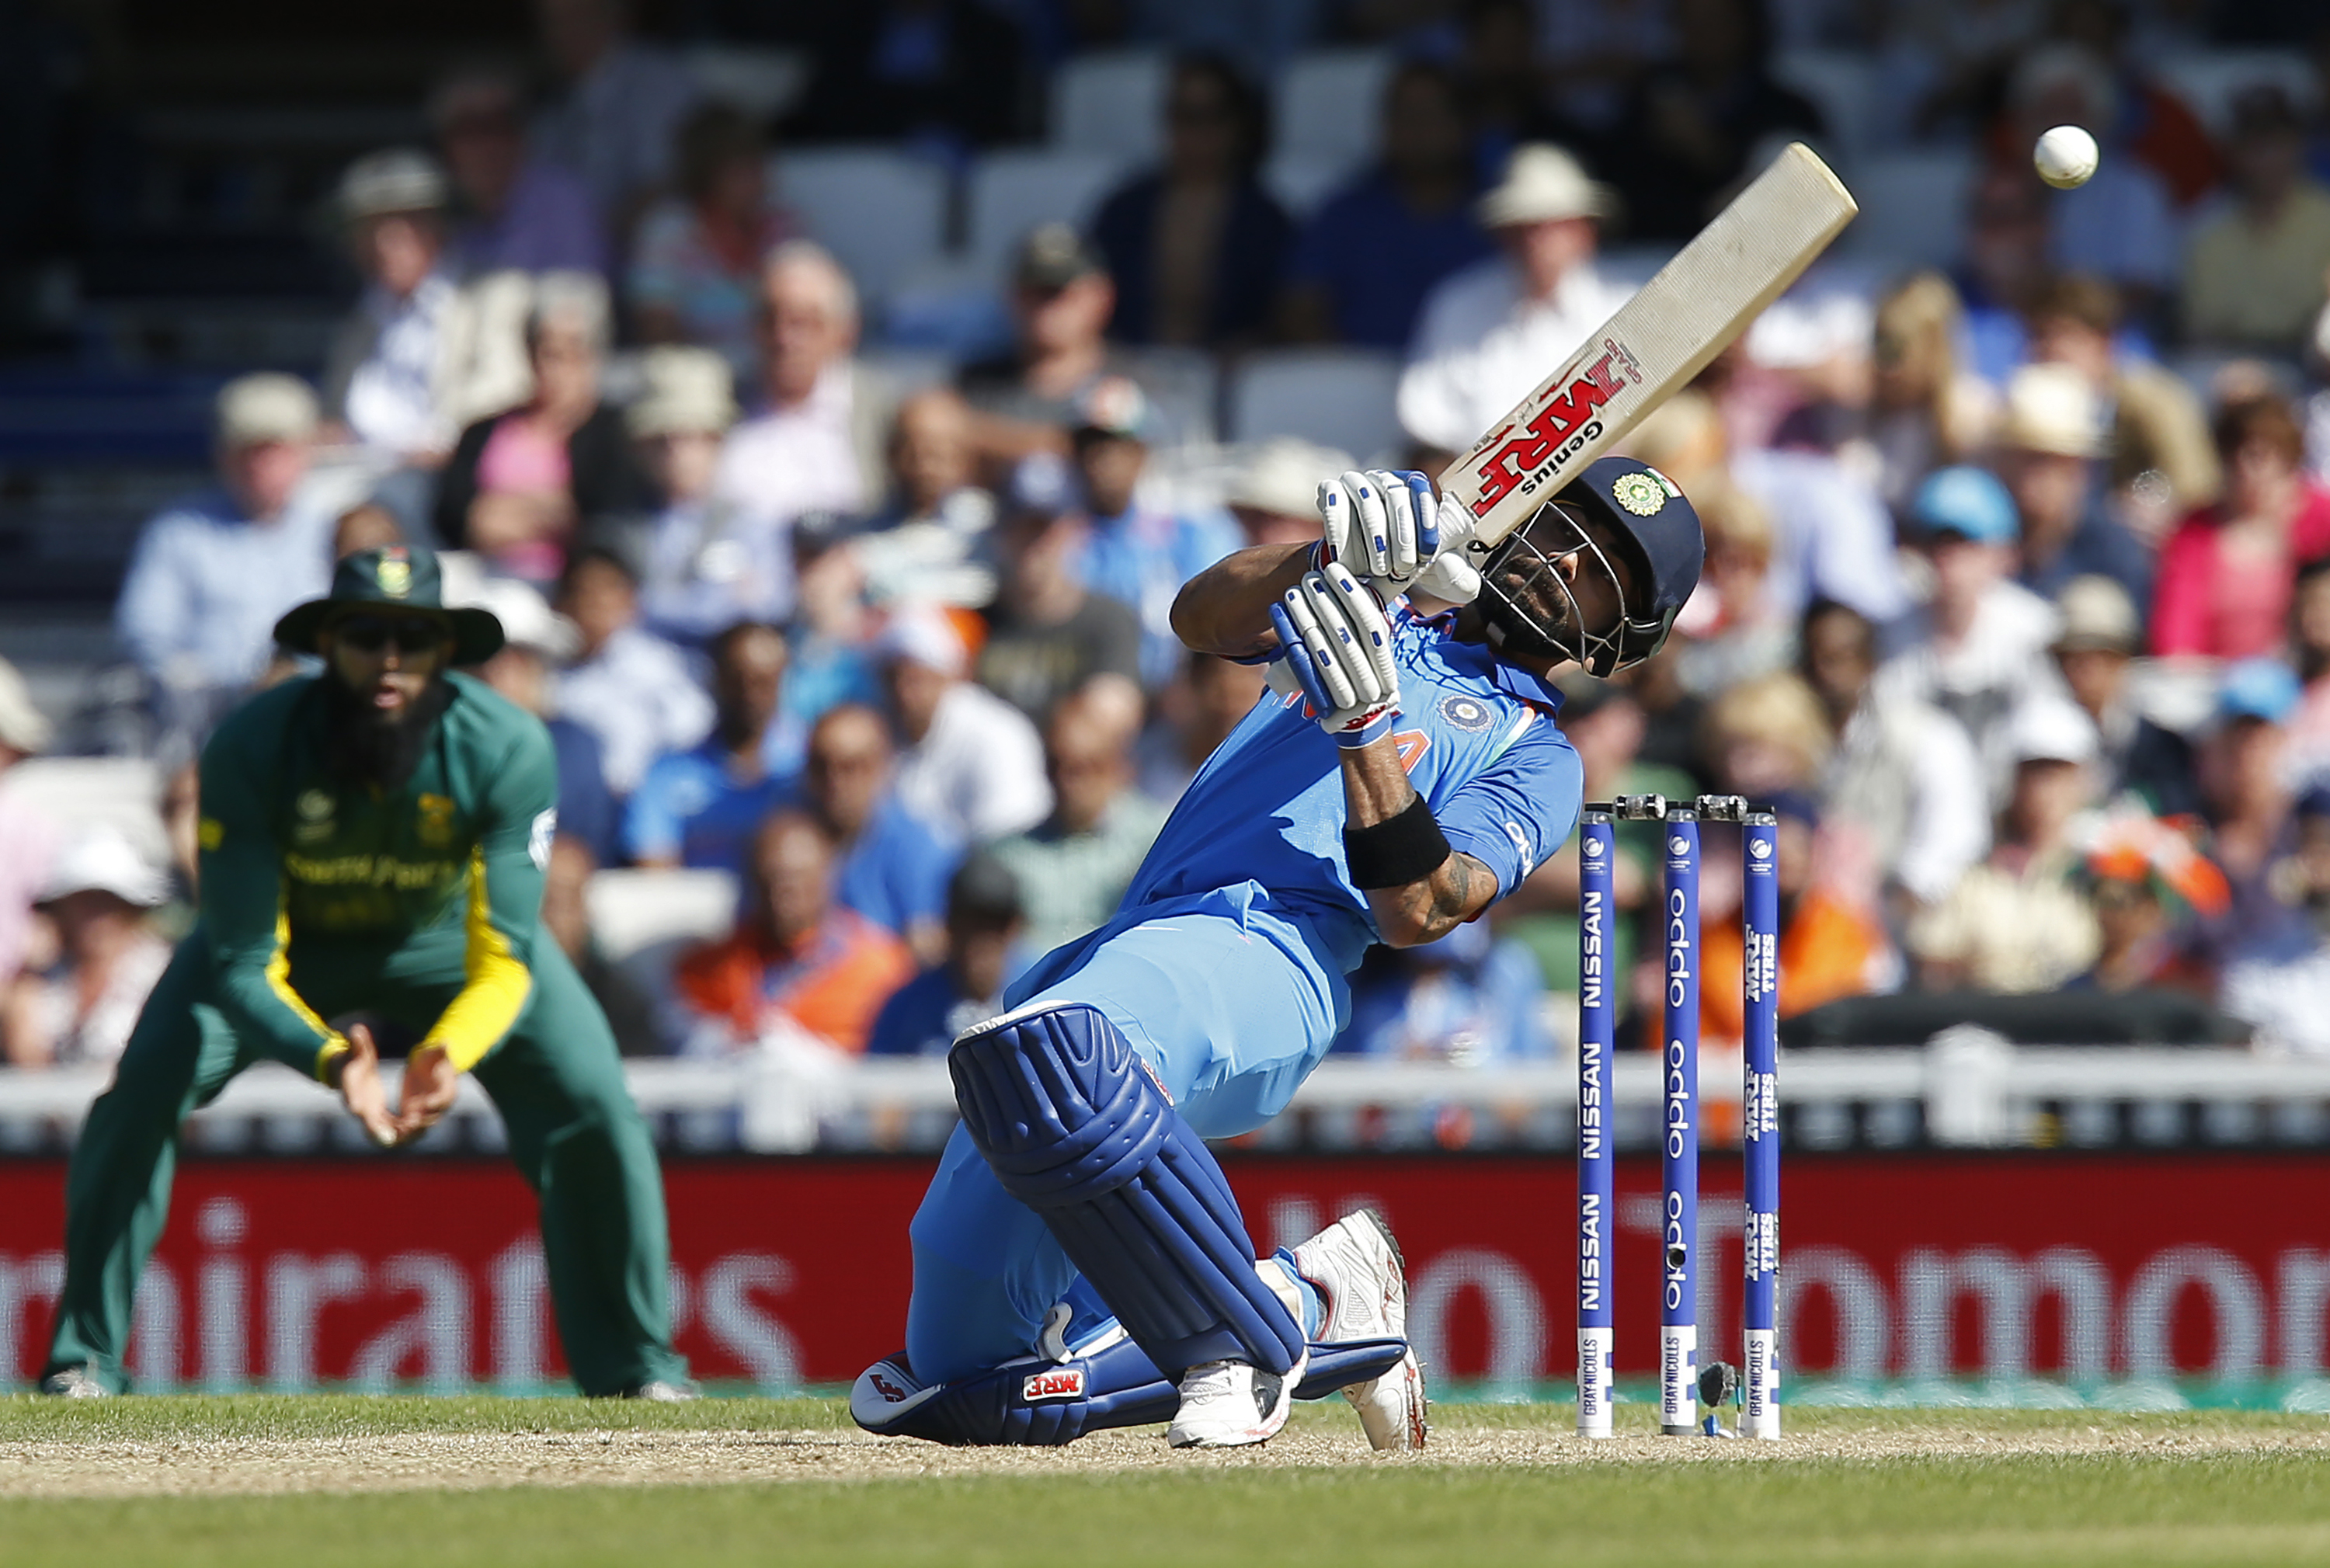 Virat Kohli had come into bat with India on 23/1. His stand with Dhawan proved vital. Photo: AFP